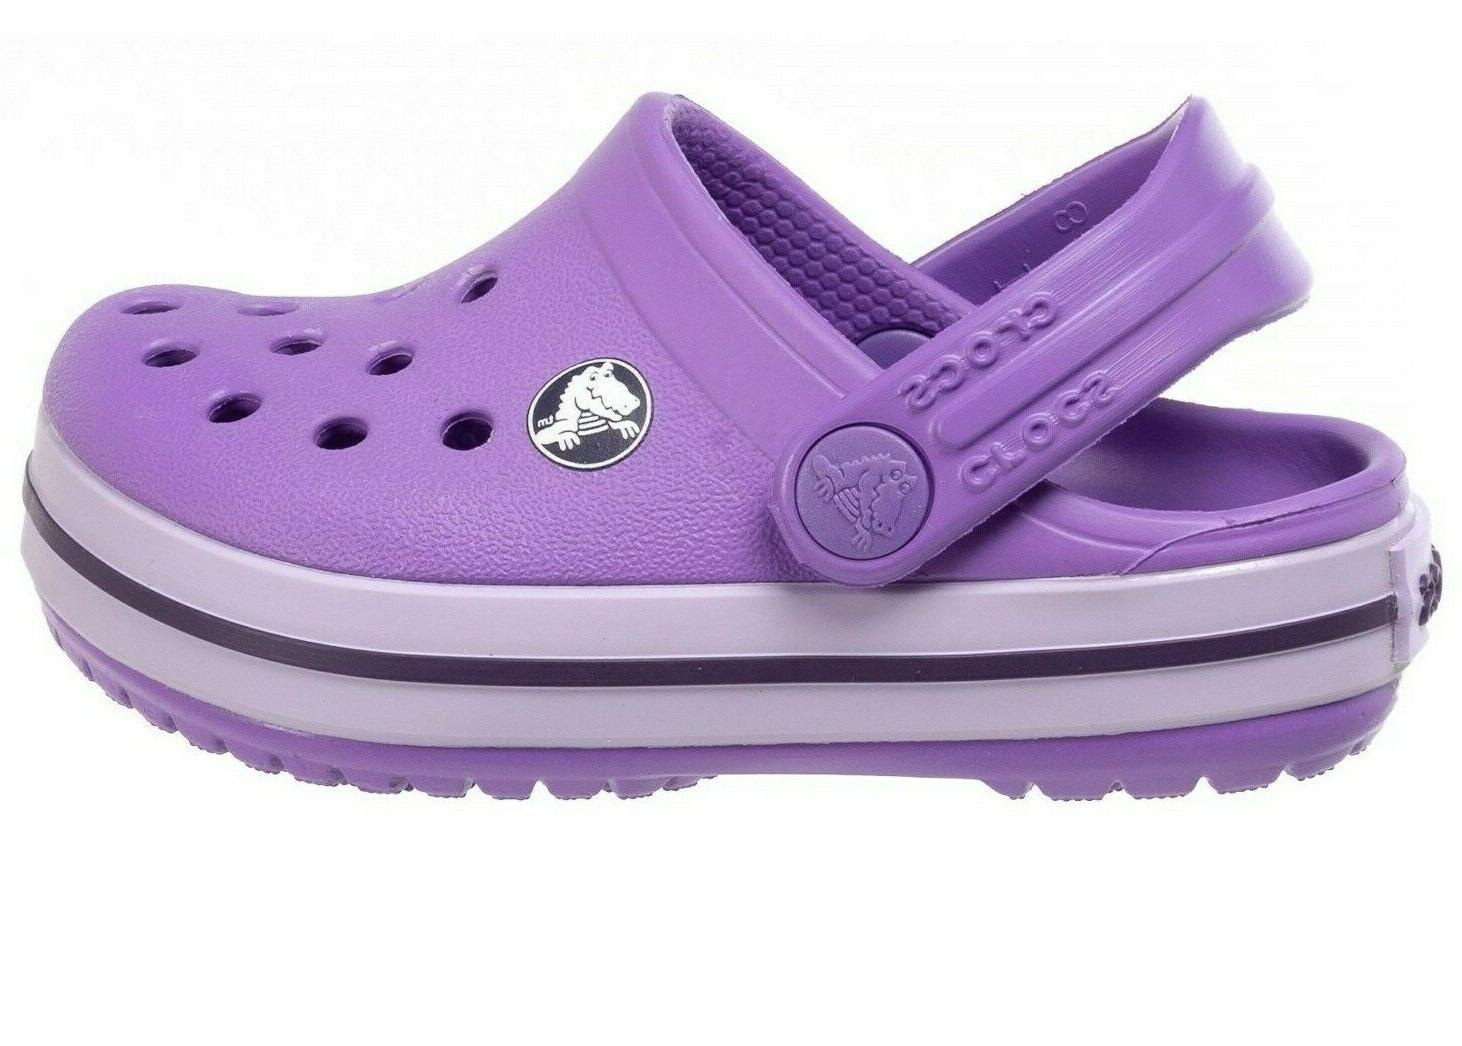 Summer Water Toddler Size and 5